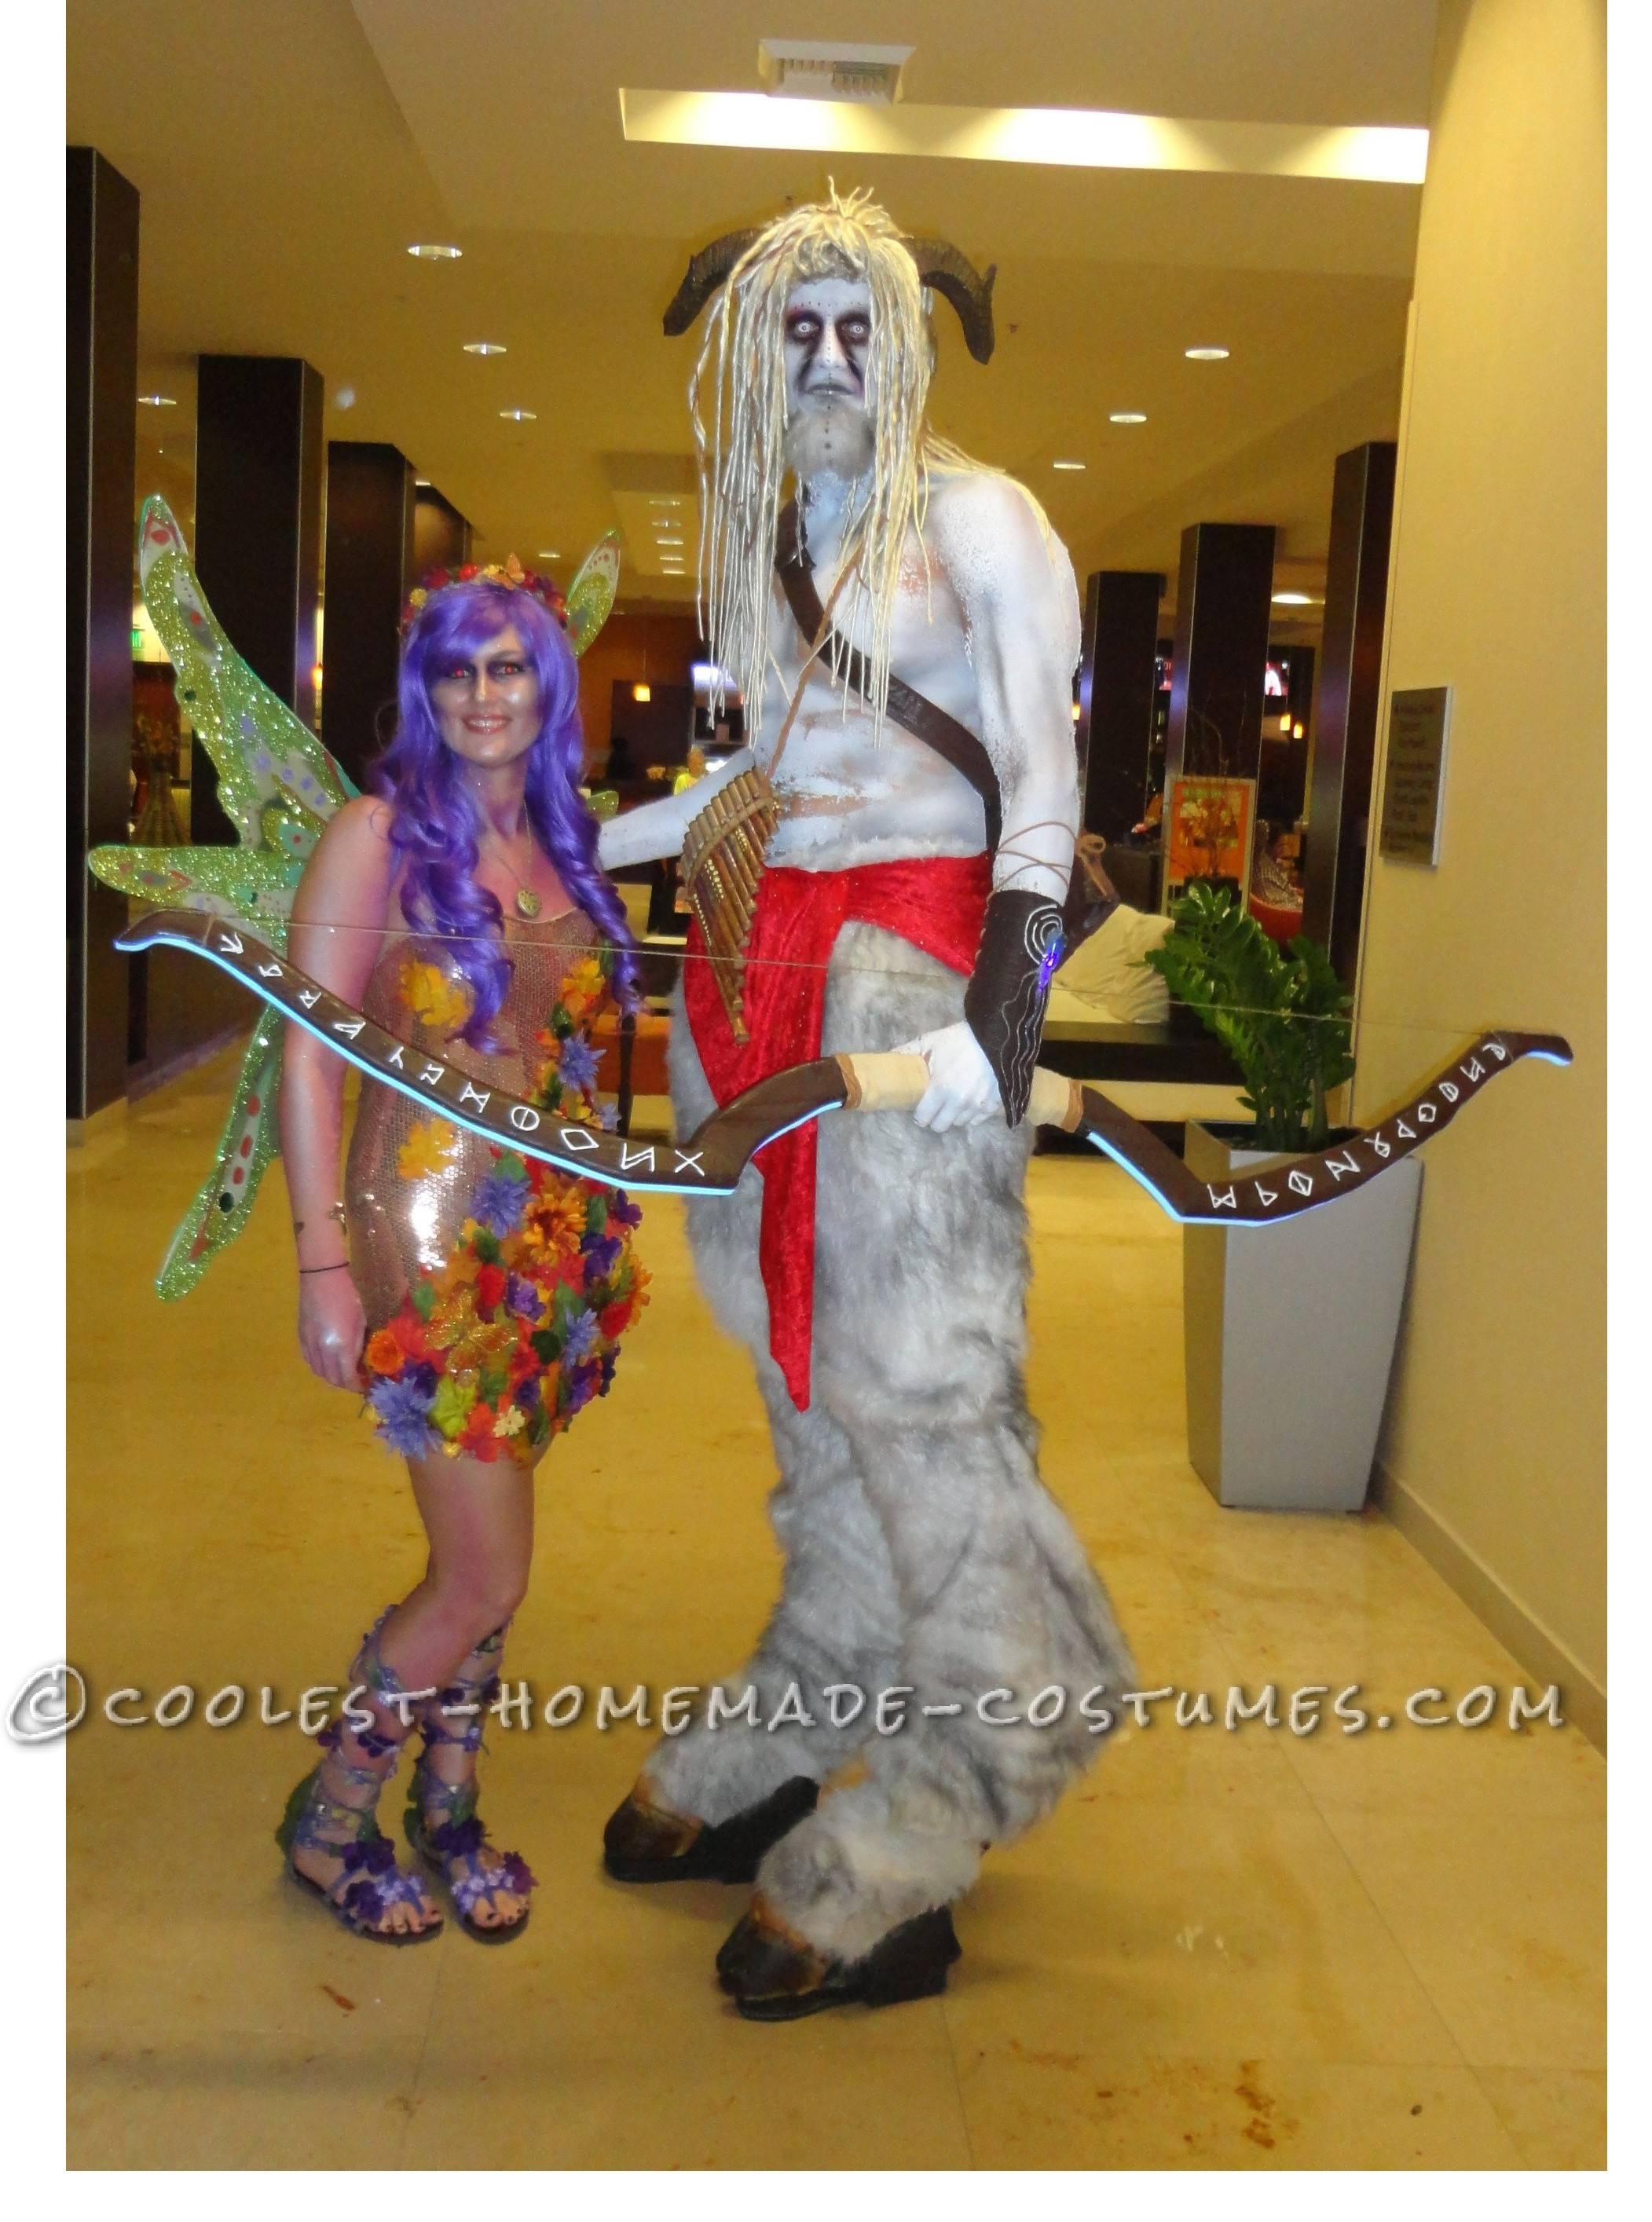 Coolest Homemade Satyr (Goatman and Nymph) Costumes